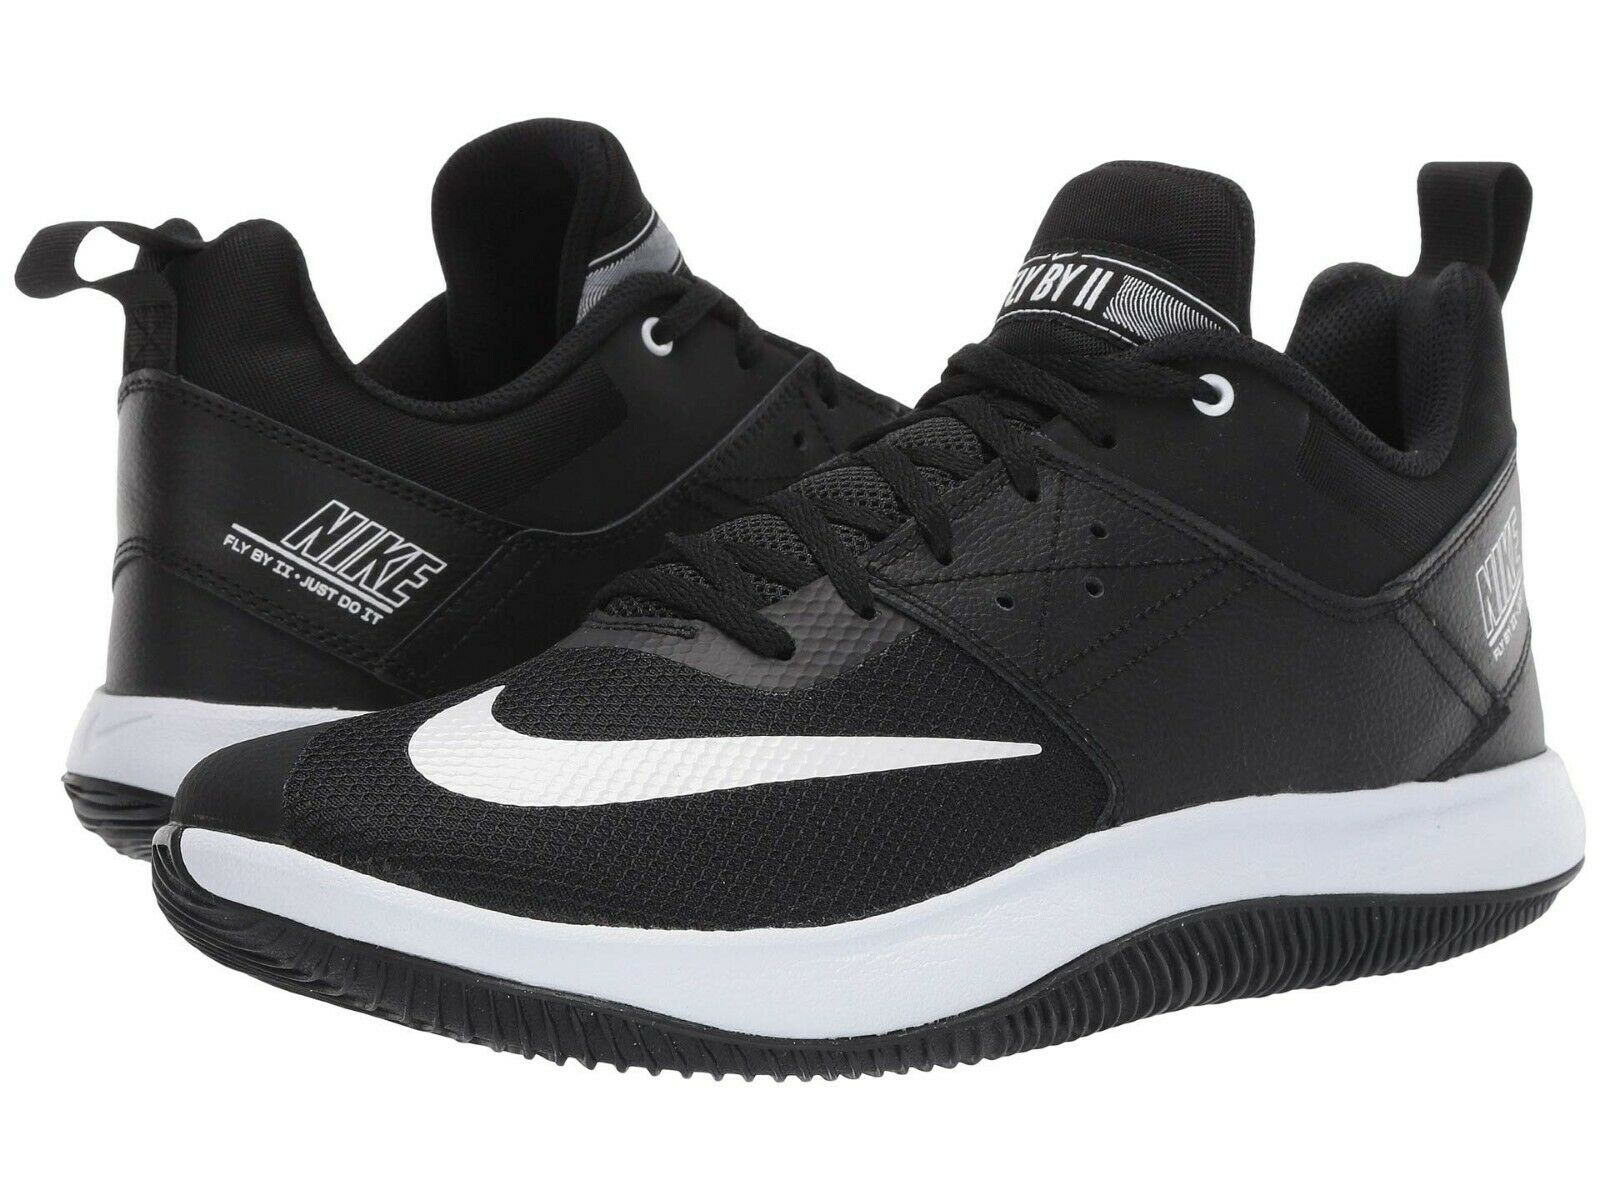 Nike FLY.BY LOW II Mens Black White AJ5902-011 Lace Up Basketball shoes